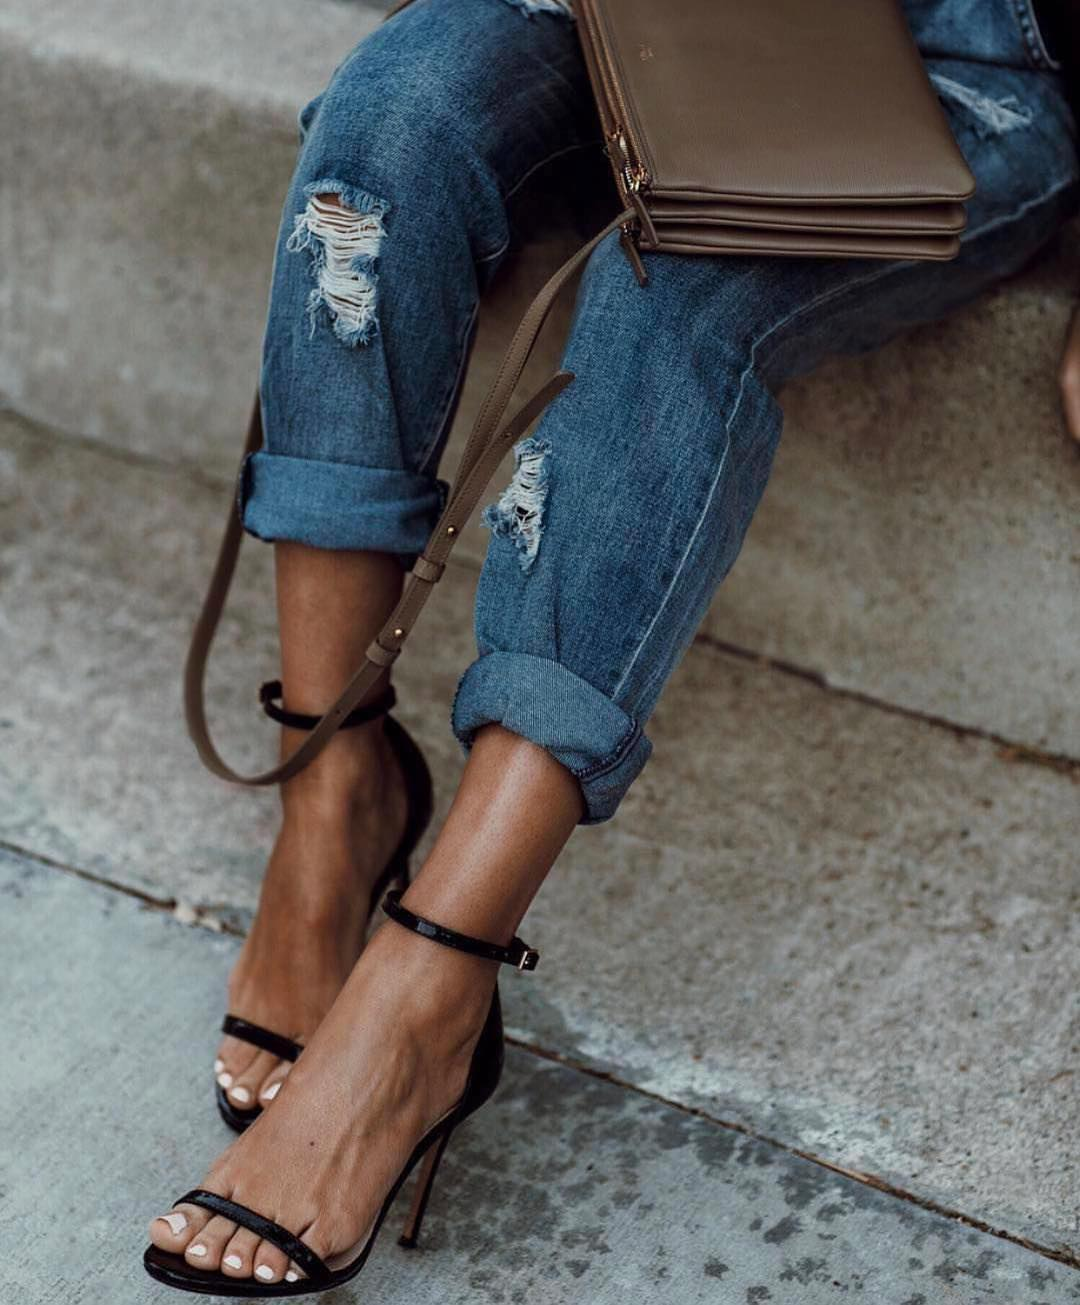 Cuffed Boyfriend Jeans And Ankle Strap Heeled Sandals In Black 2021